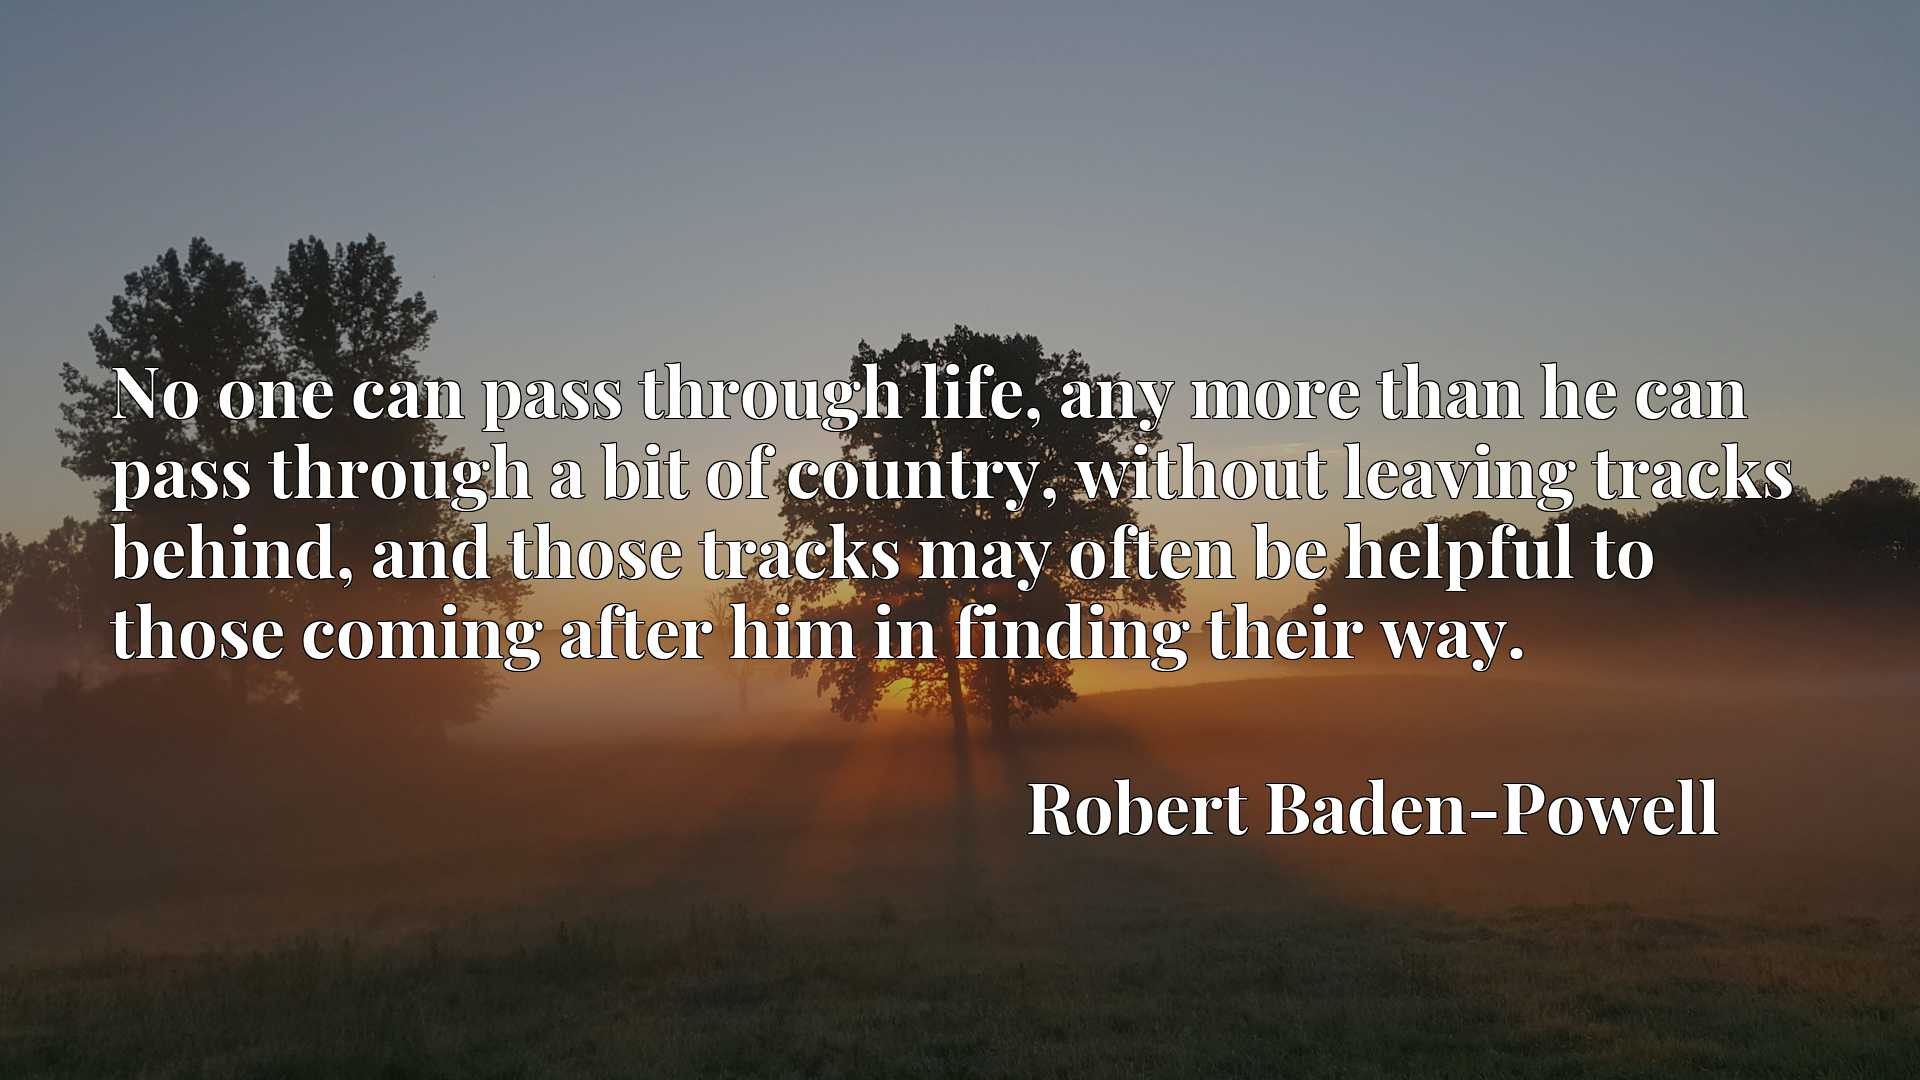 No one can pass through life, any more than he can pass through a bit of country, without leaving tracks behind, and those tracks may often be helpful to those coming after him in finding their way.